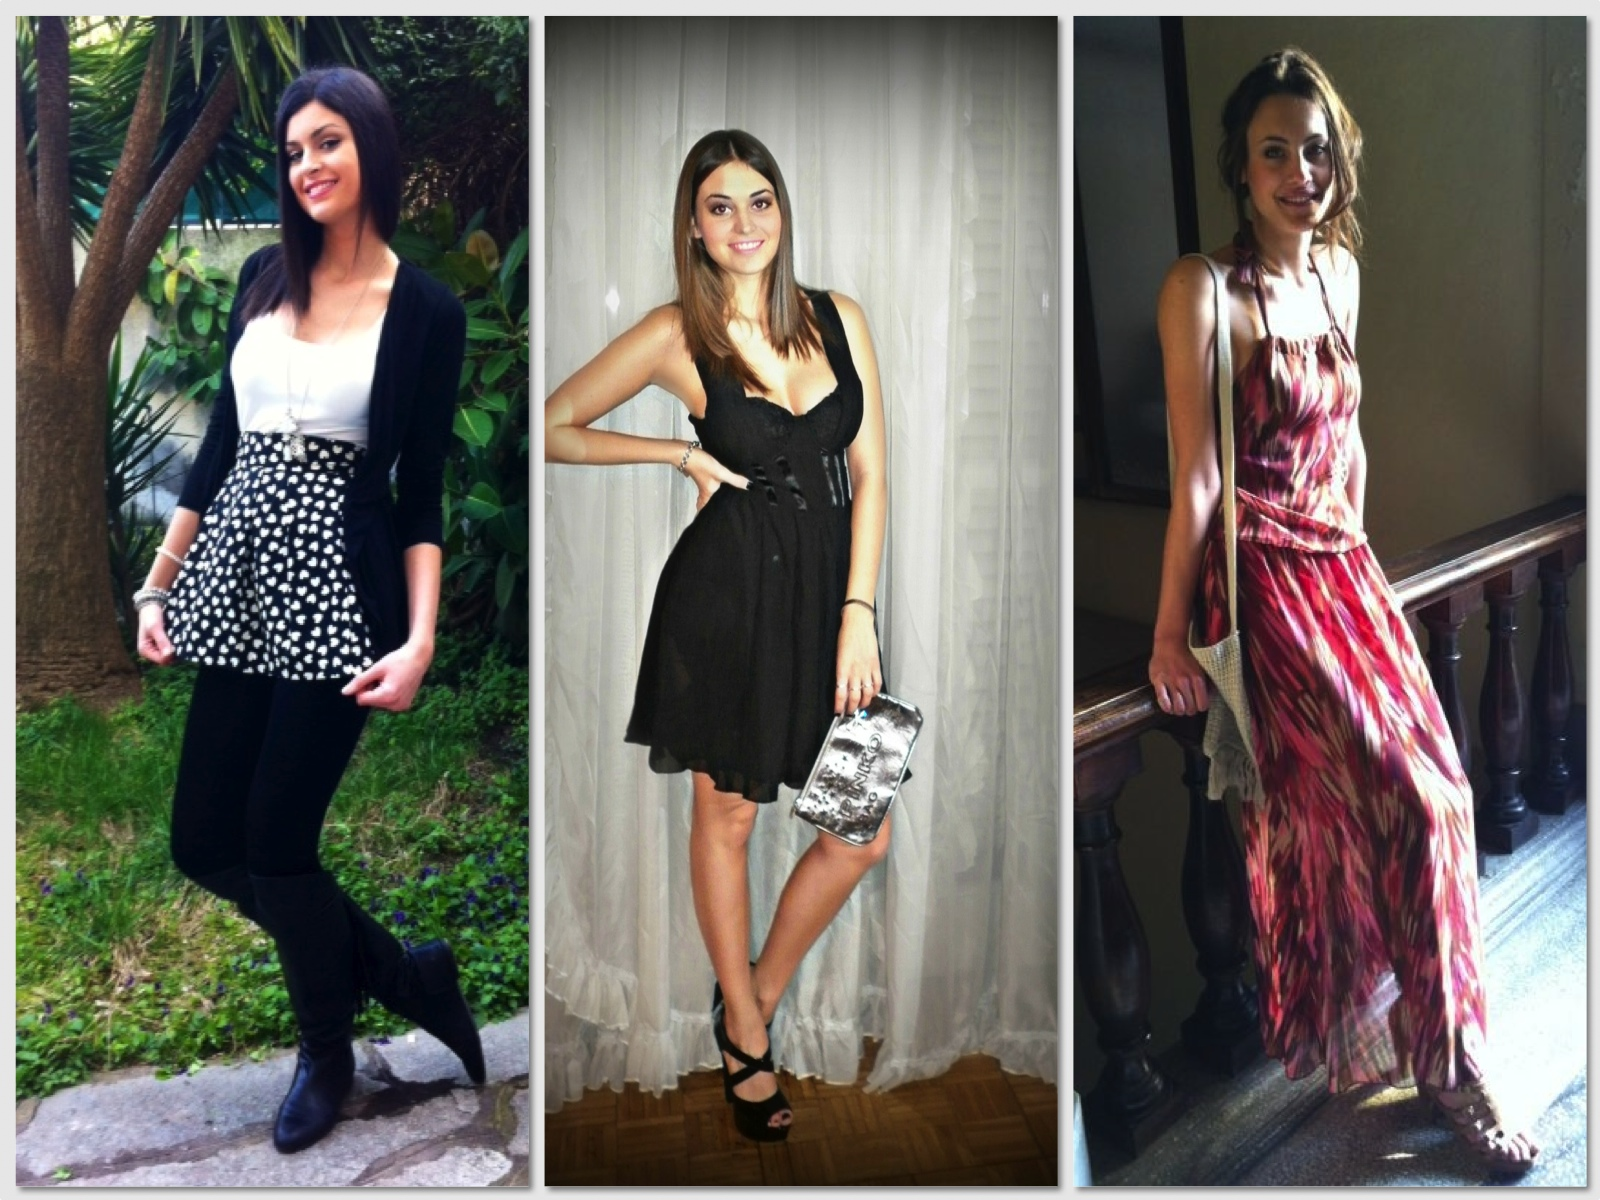 miss italia choose the best outfit, alessia milanese, thechilicool,fashion blog,fashion blogger,